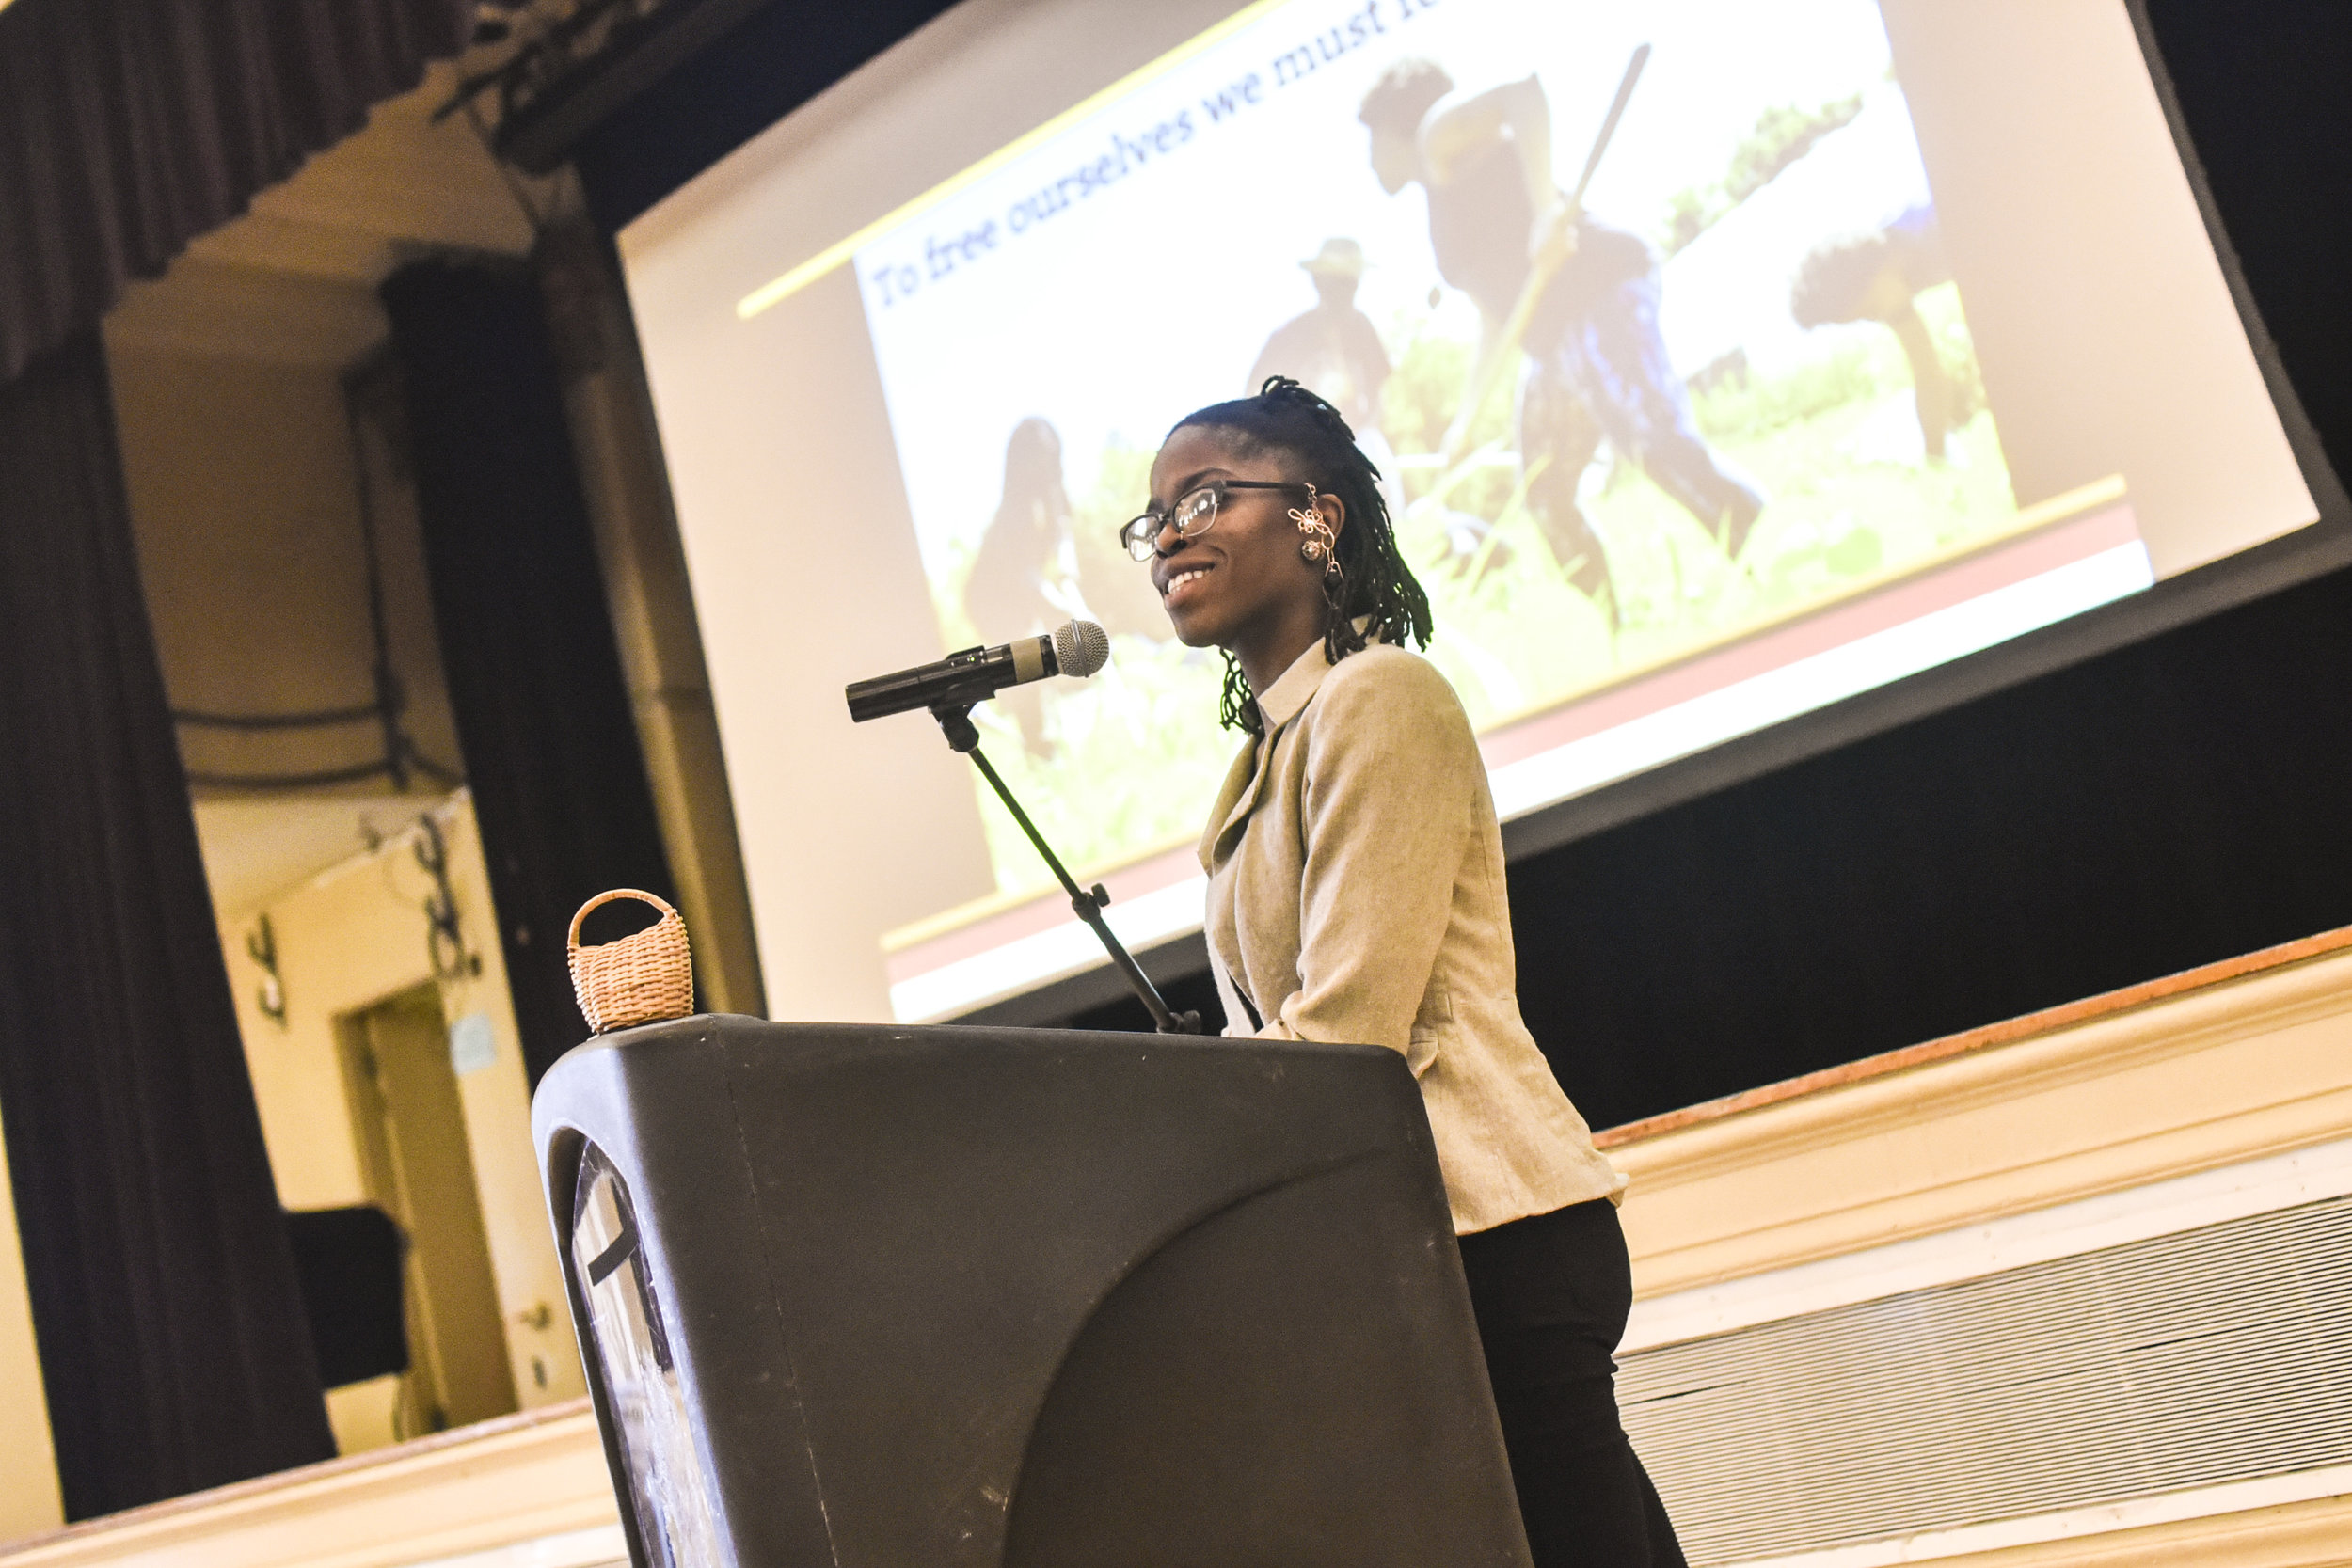 Amani Olugbala of Soul Fire Farm, Keynote Speaker at the 13th Annual Chicago Food Policy Summit